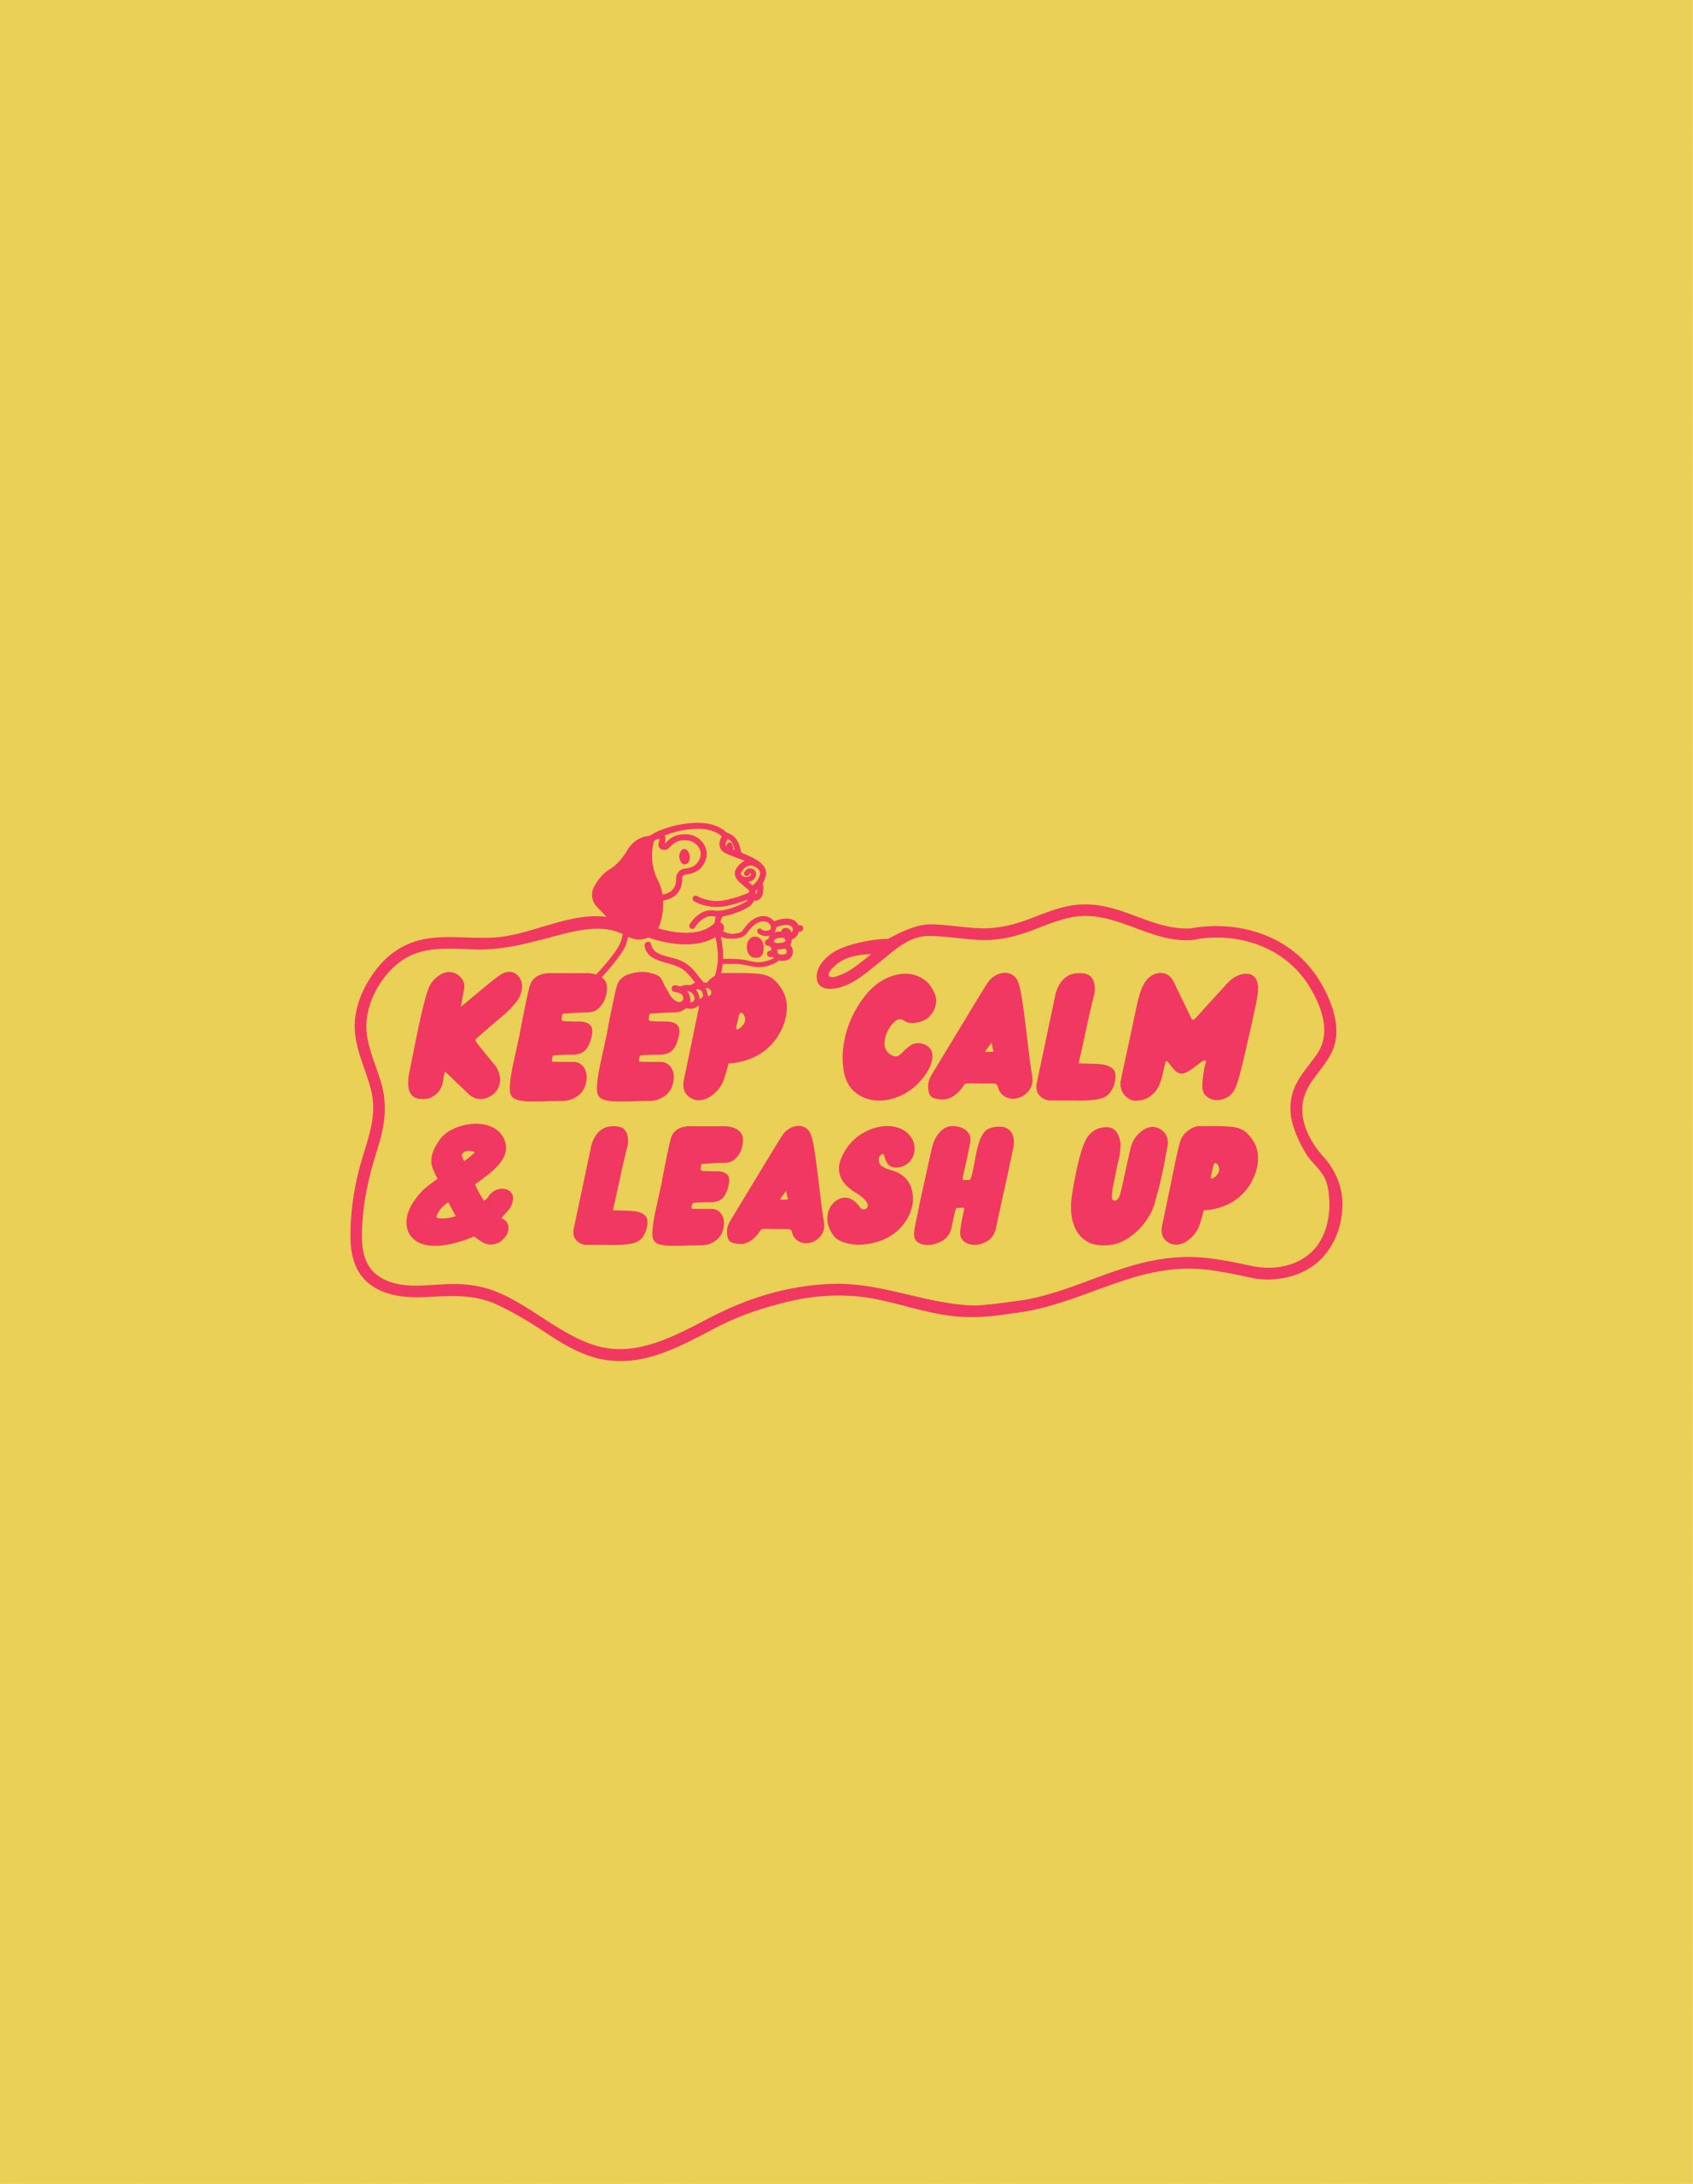 Keep Calm and Leash Up pink illustration